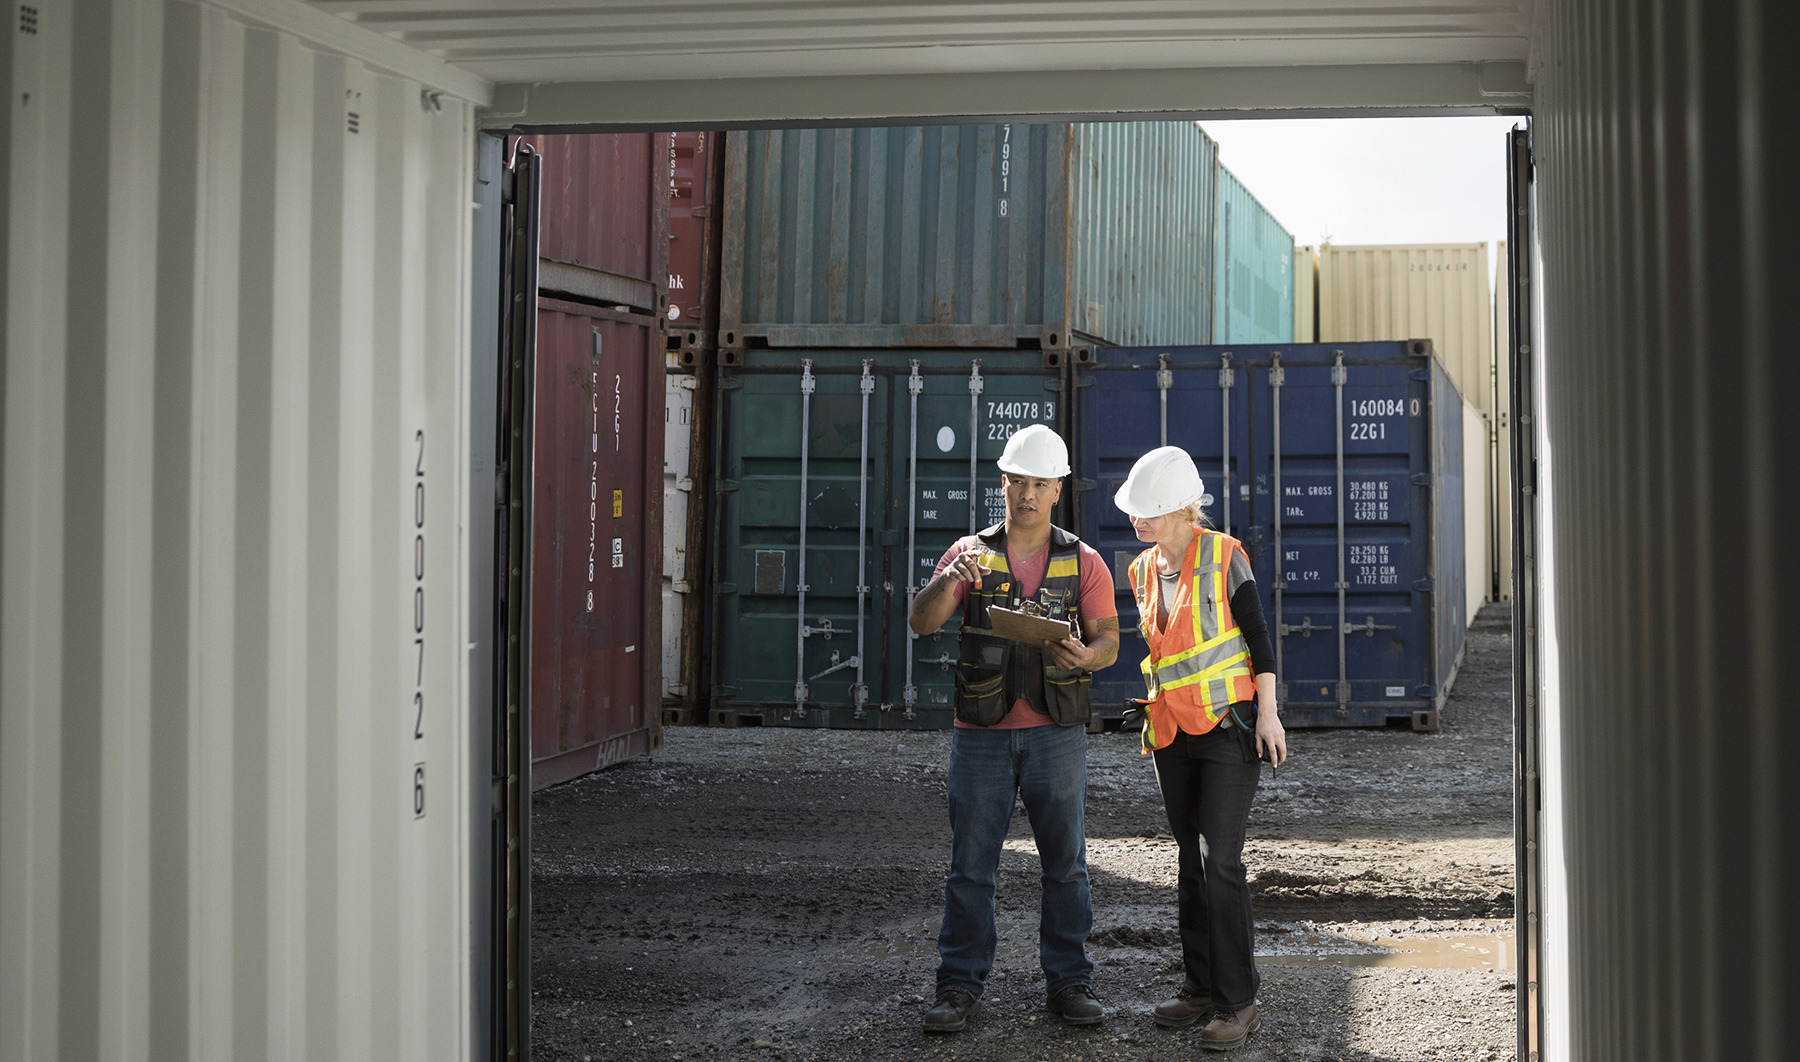 Workers inspecting empty shipping container in industrial container yard